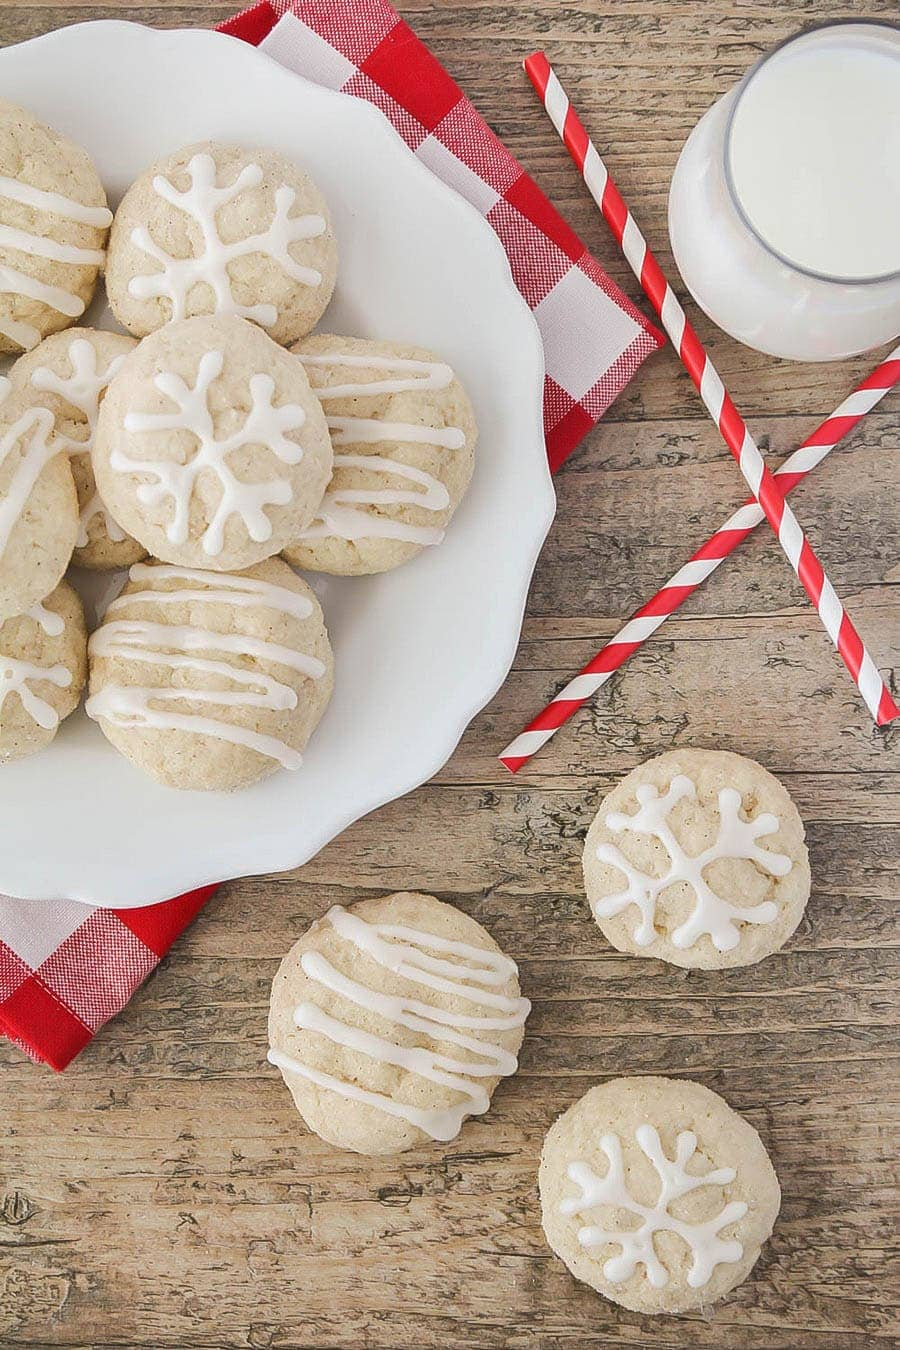 Eggnog Snickerdoodles - made with eggnog and a splash of rum extract in the dough, then rolled in a nutmeg and cinnamon mixture. SO yummy!!